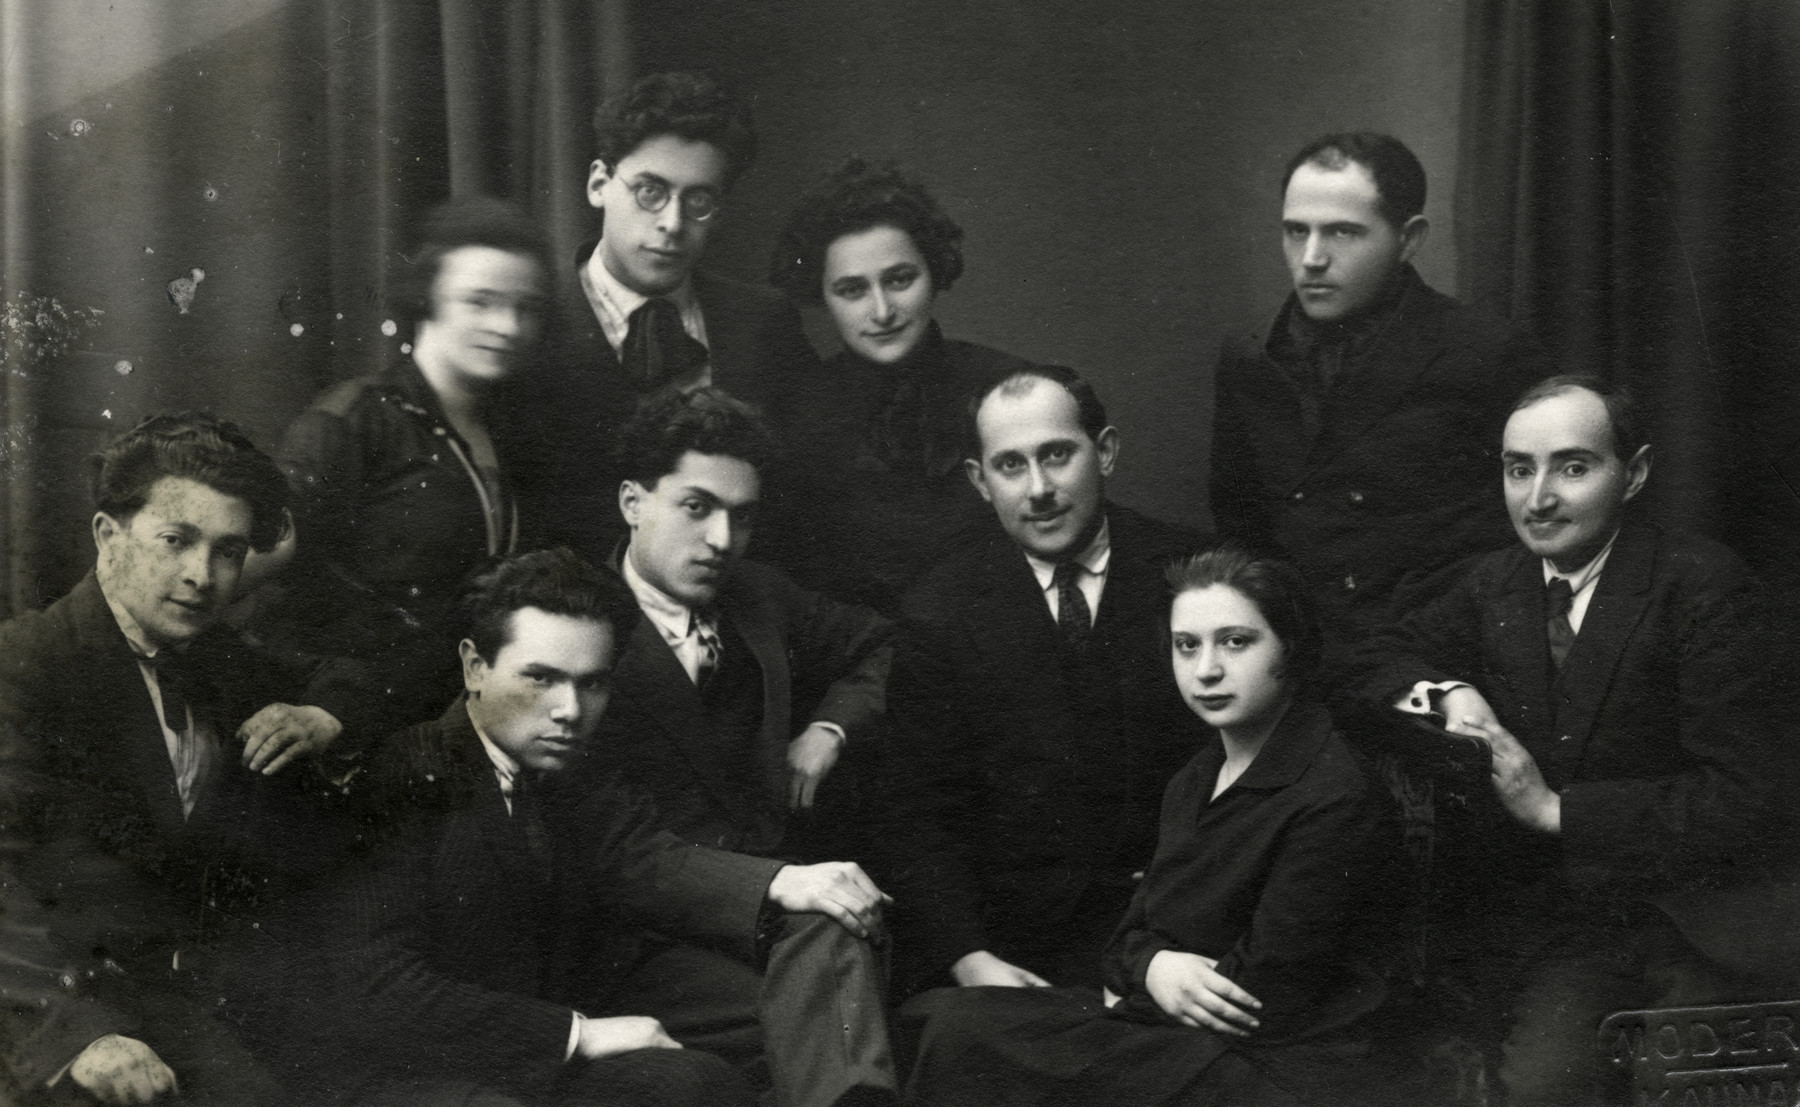 A group of young Jewish intellectuals in Kaunas gathers for a going away party for David Frum who is immigrating to South Africa.  Front row (right to left): Kalman Zingman (editor of Vispa), father of Avraham Zimrani, Batia Prakar (dentist), Mordechai Yaffa (poet), Yaakov Lipshitz (artist), Aharon Goldblat (poet).  Standing: Zeli Boker (artist), Leah Greenstein (poet), Szeinson (artist), Shein.